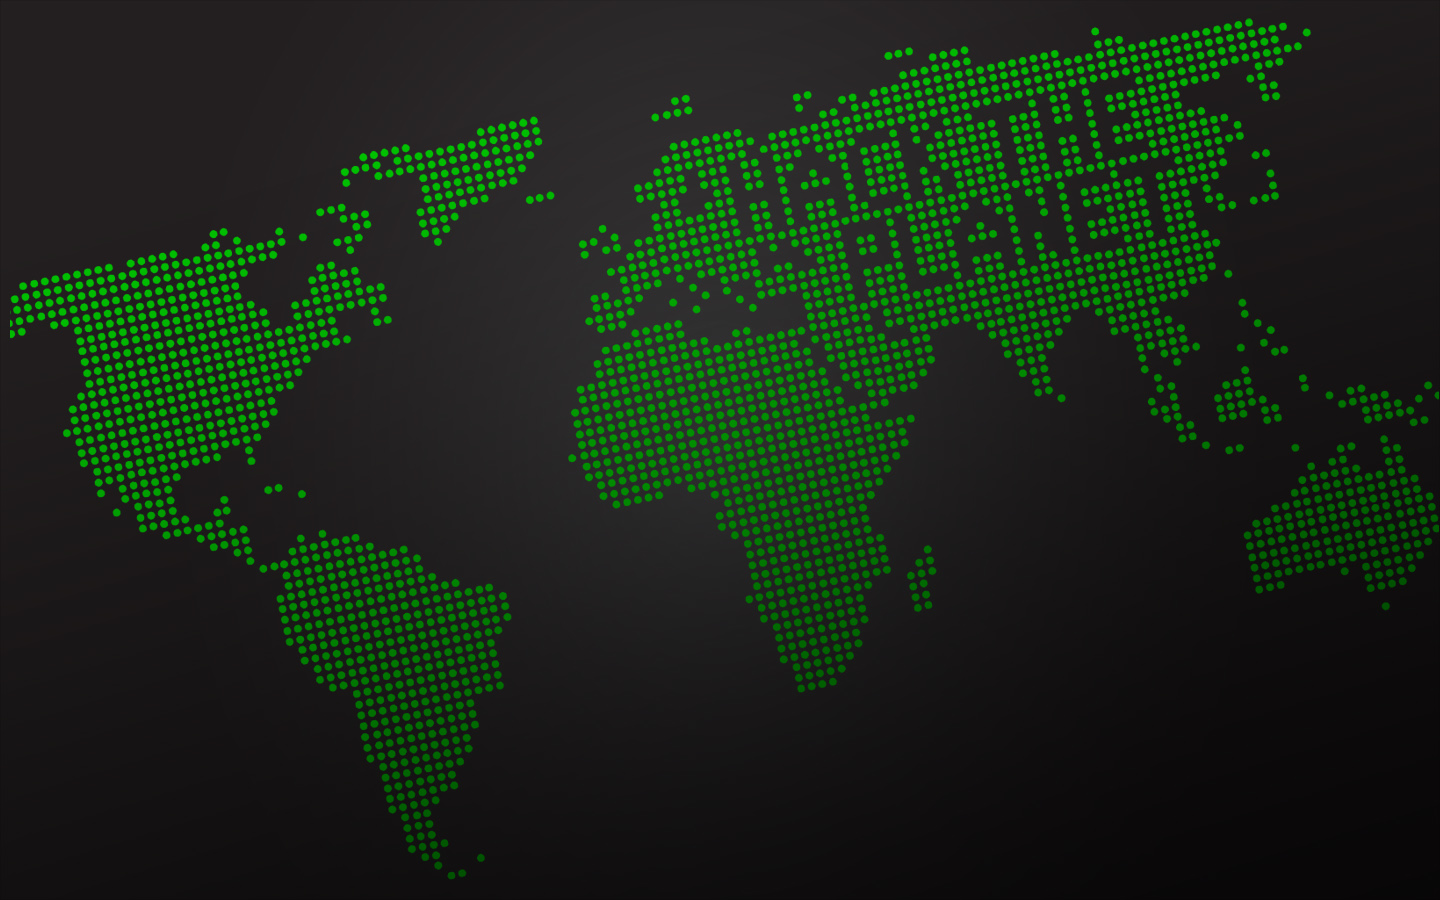 Hacker-Wallpaper-009.jpg (1440×900)